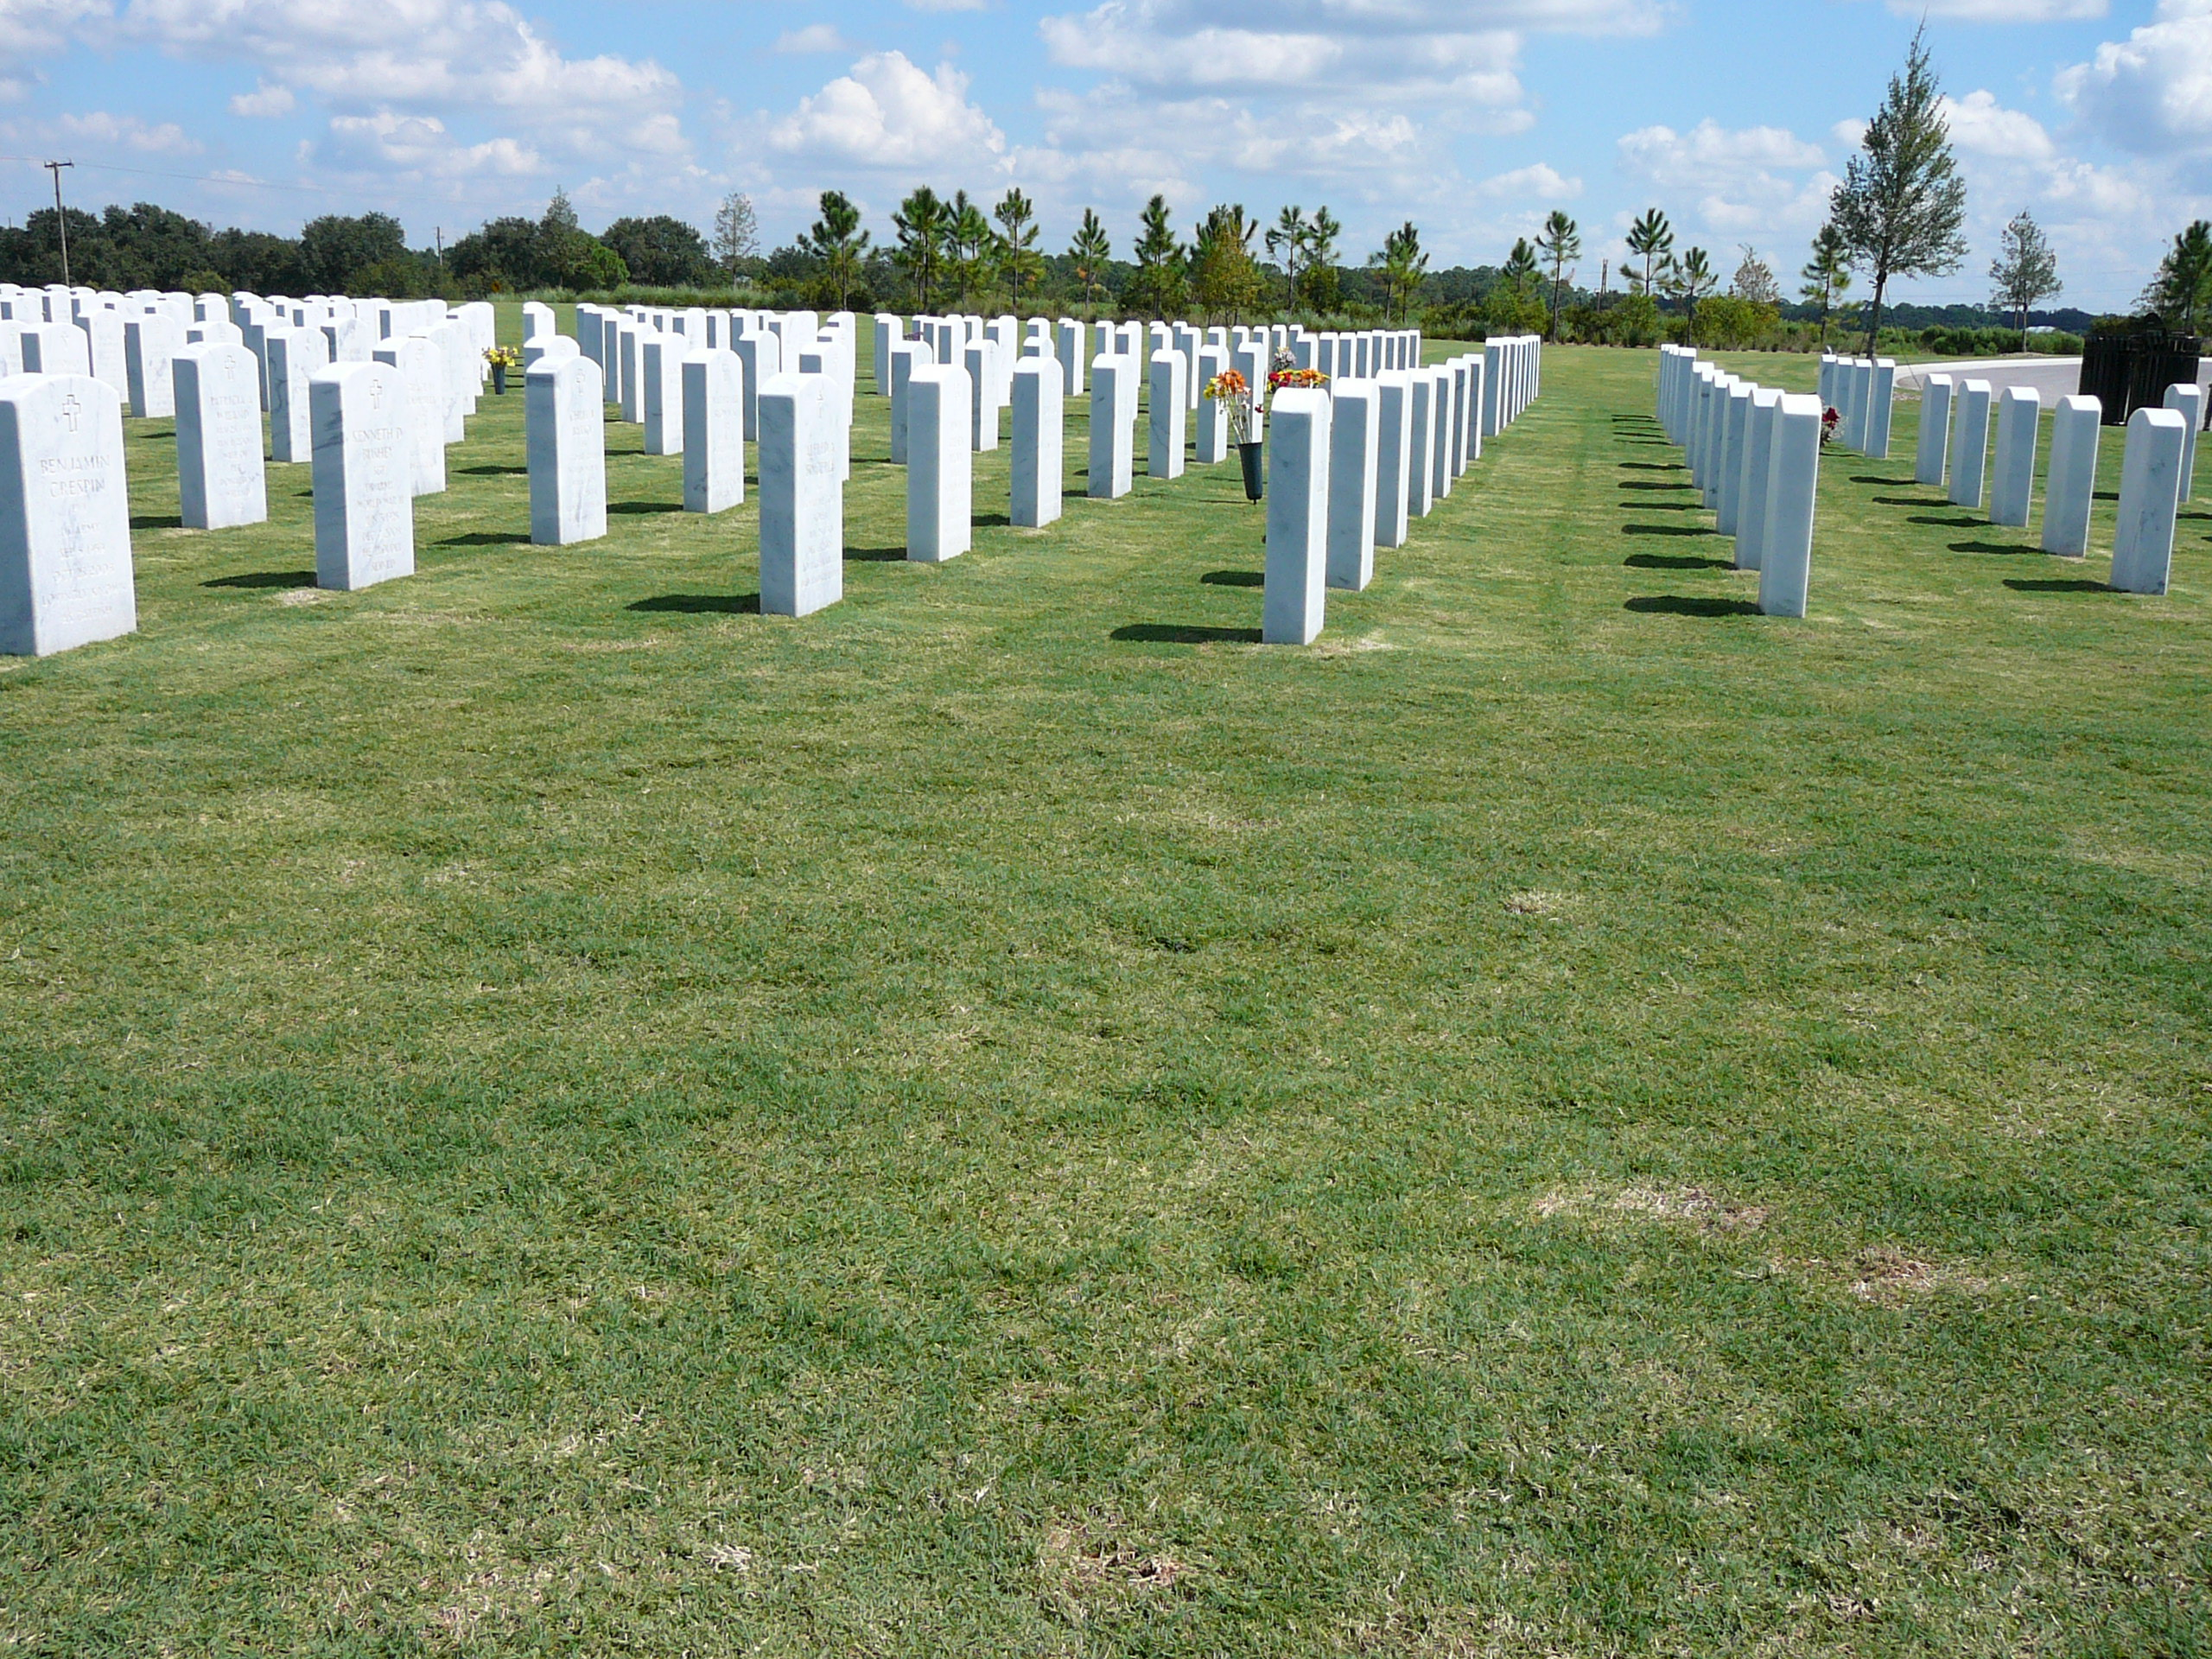 SARASOTA_NATIONAL_CEMETERY__Oct_'09_011.jpg